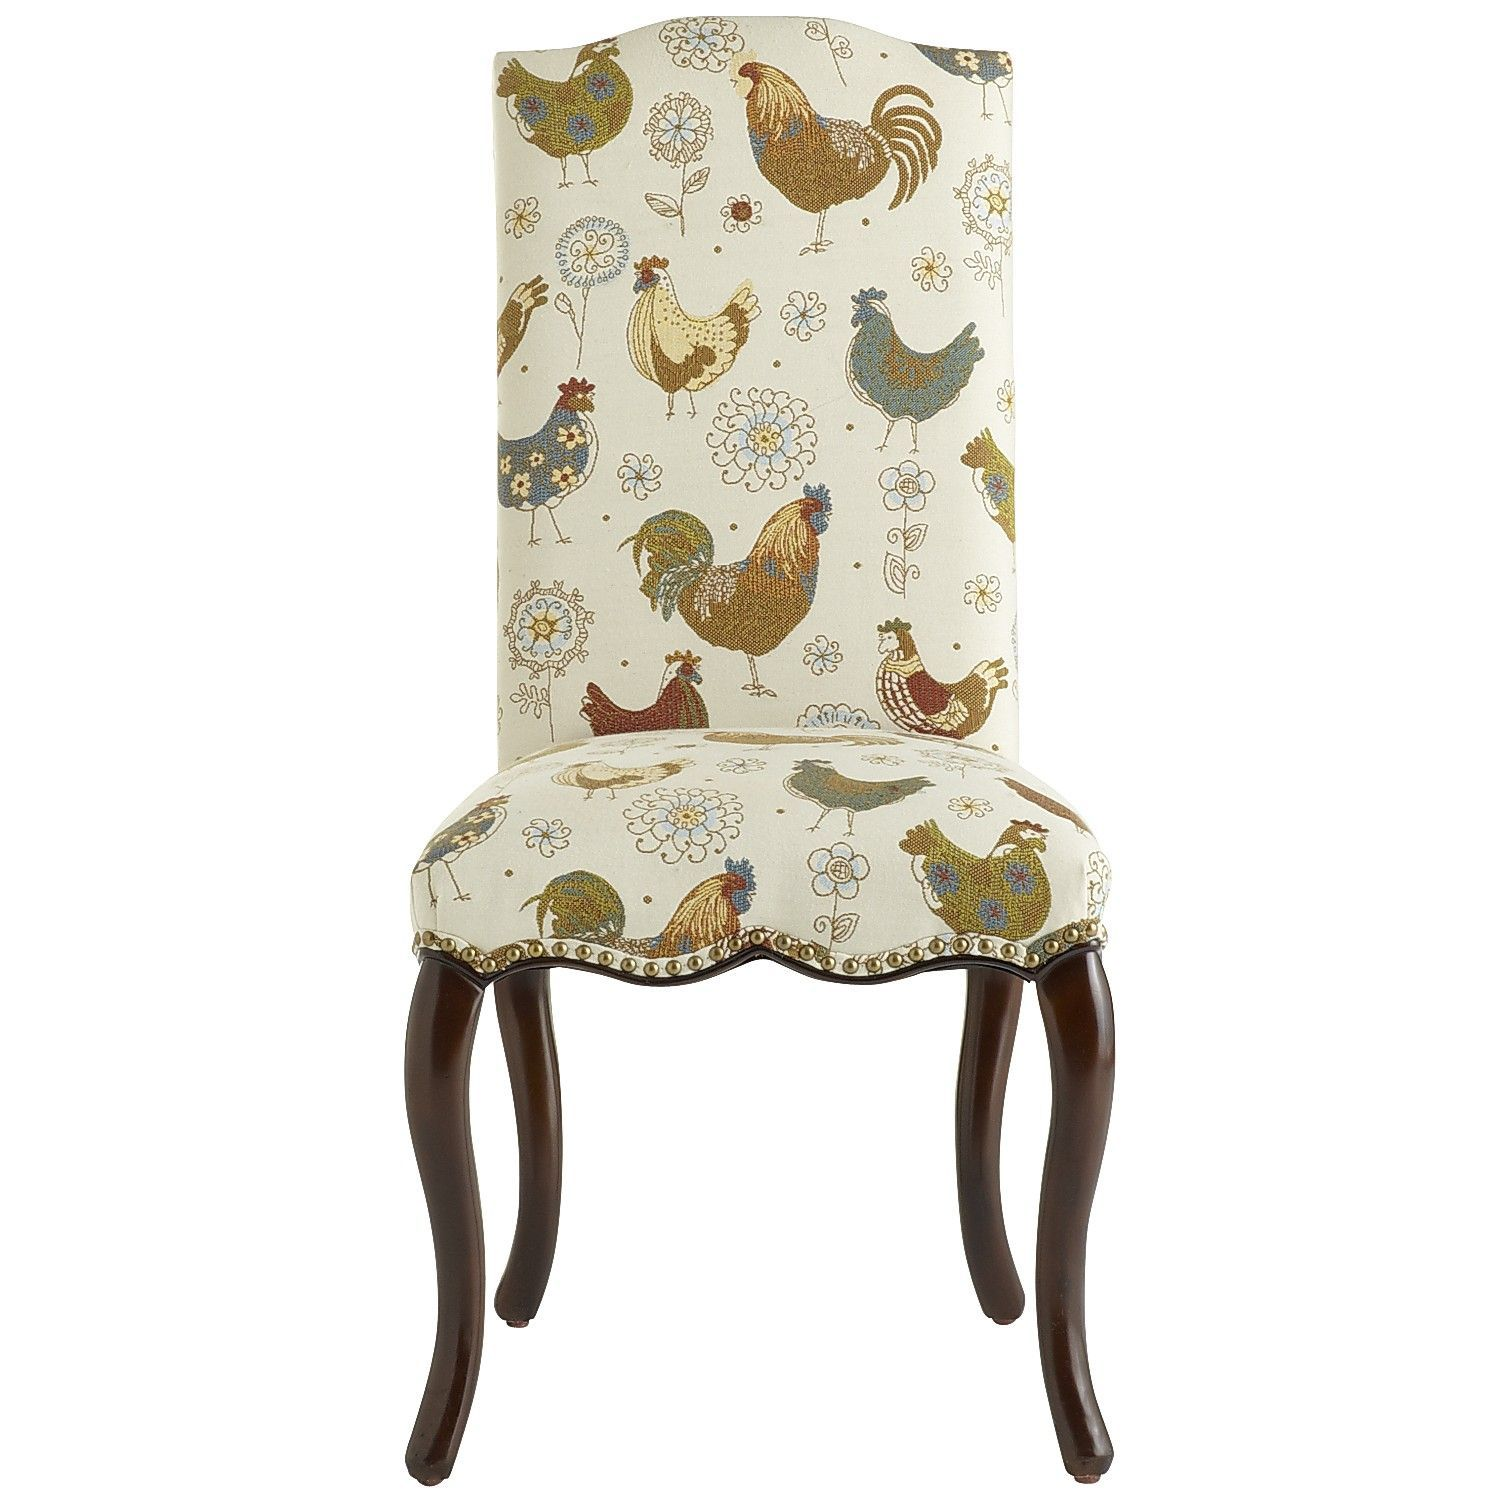 Rooster dining chair at pier 1 imports must have where theres a will theres a way